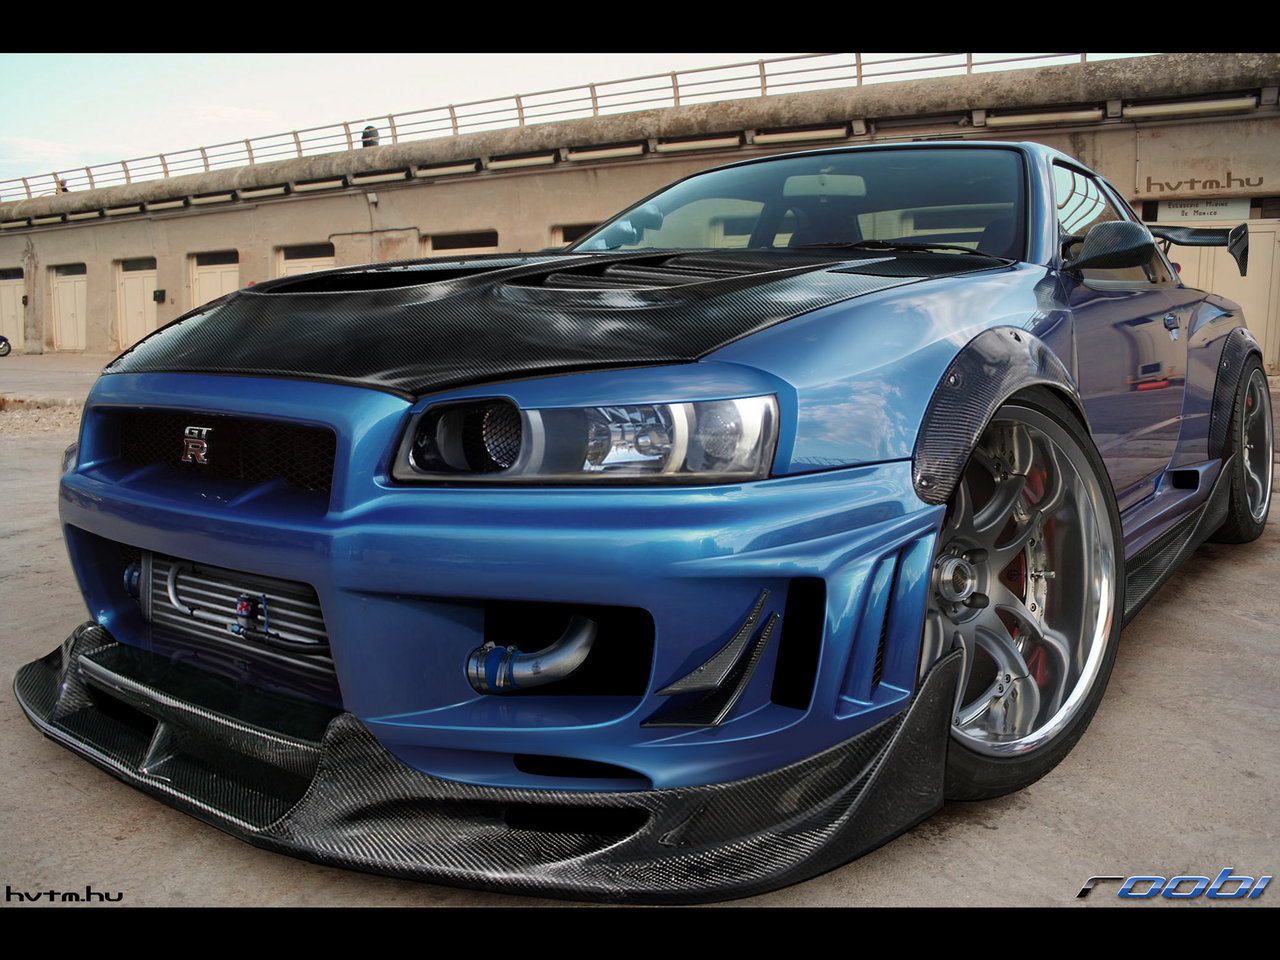 gtr pictures and wallpapers nissan skyline gtr pictures and wallpapers 1280x960